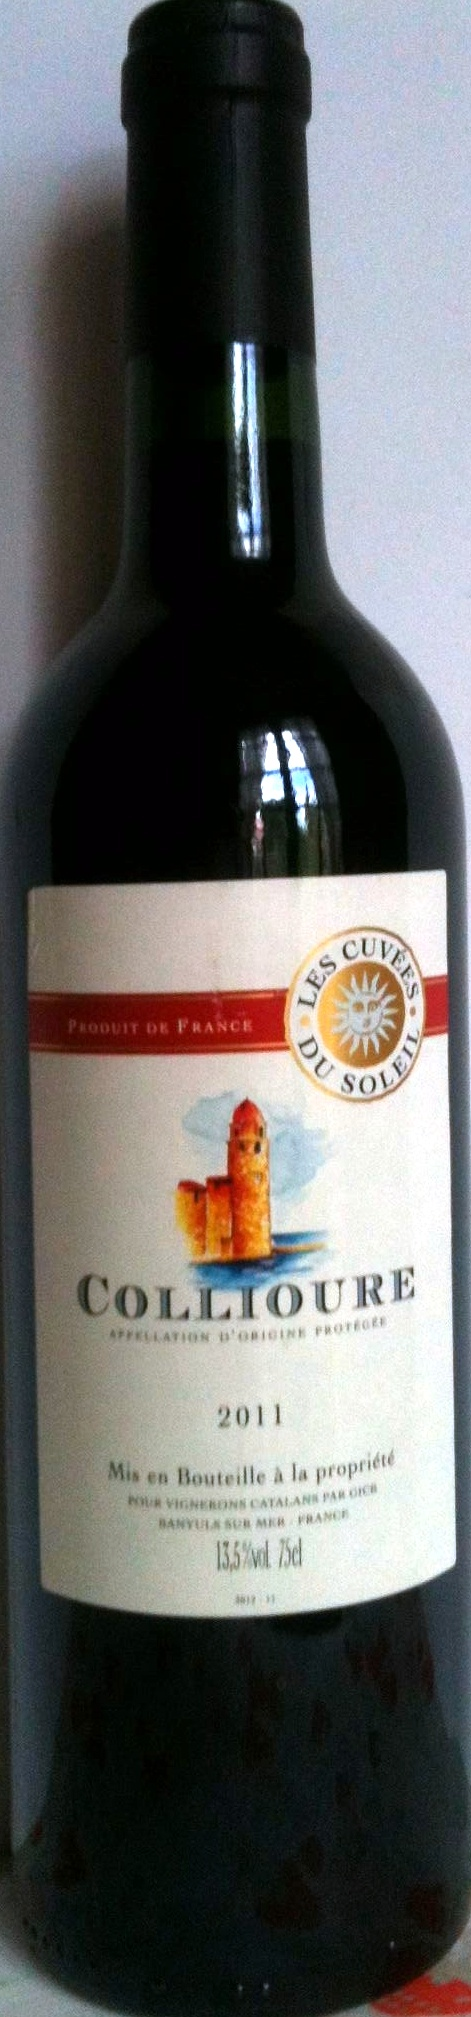 Collioure 2011 - Product